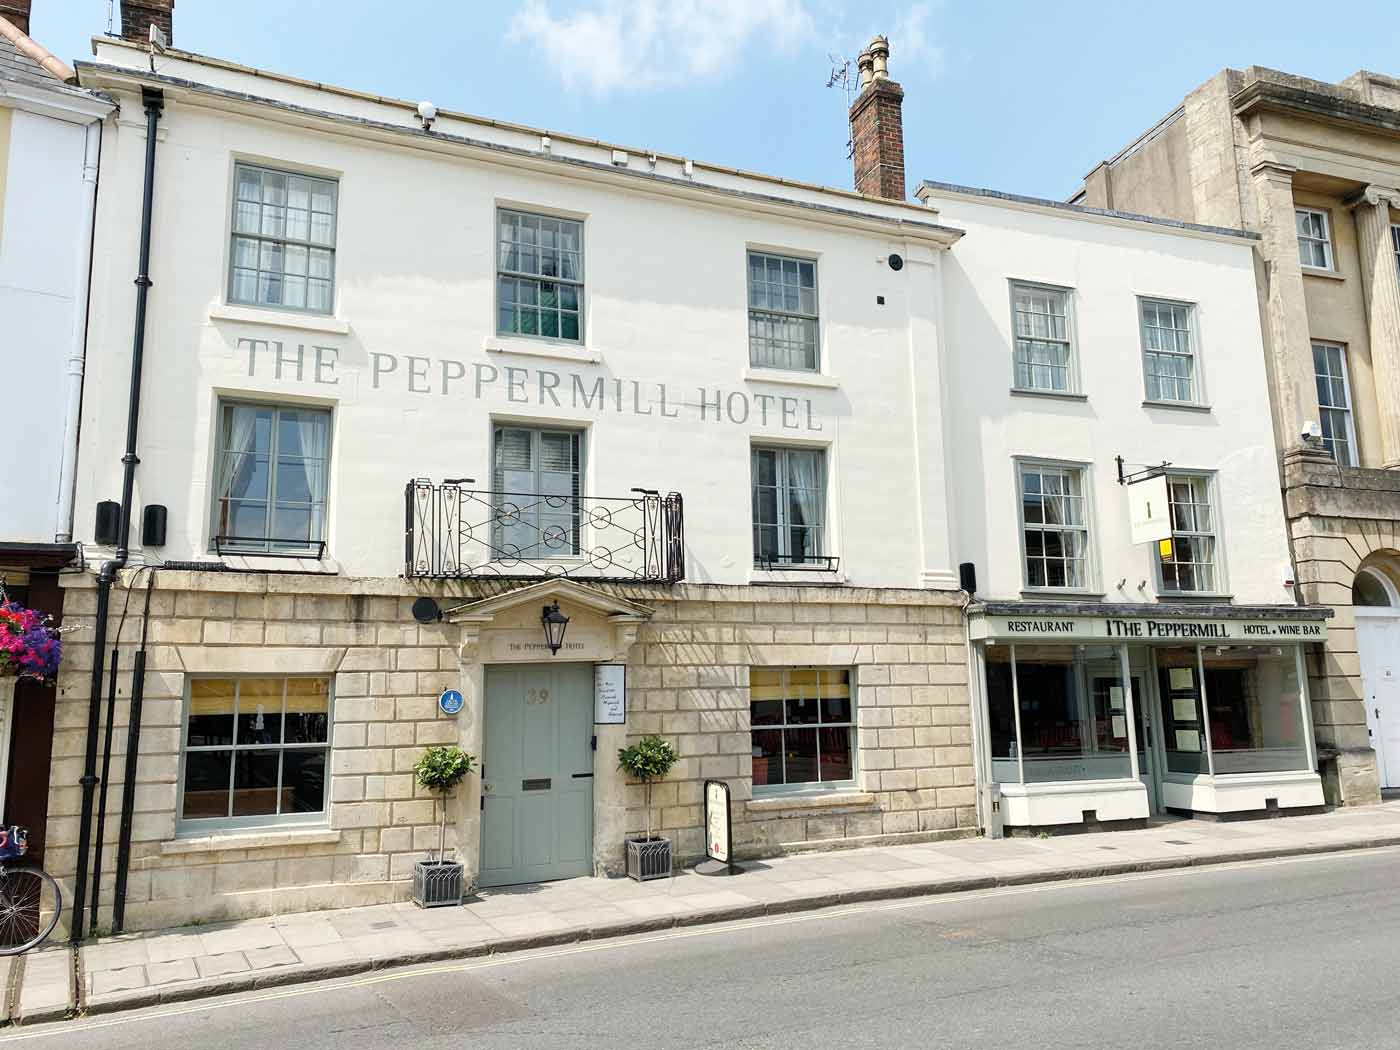 The Peppermill Devizes, Wiltshire